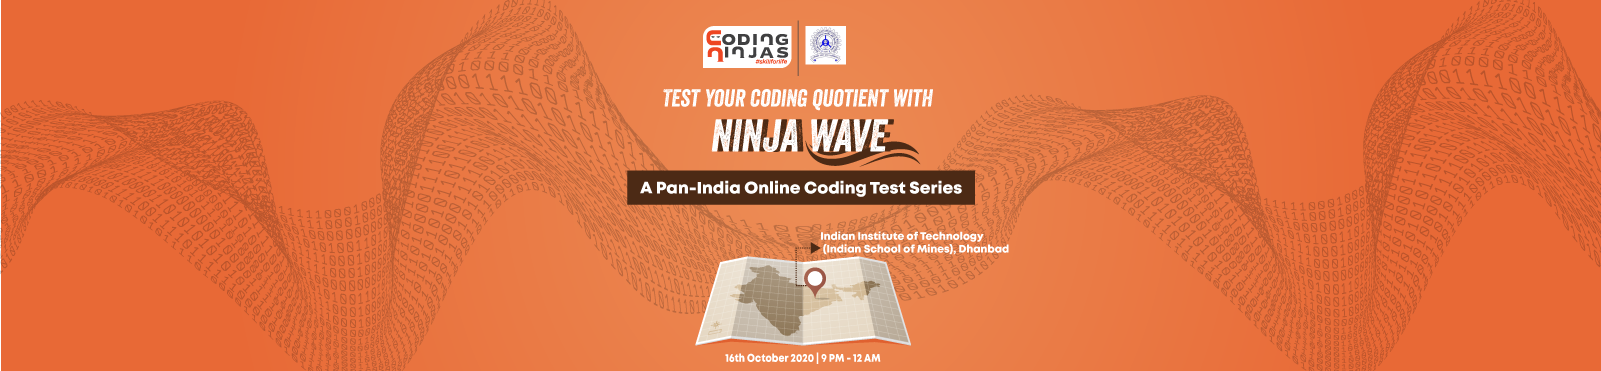 Ninja Wave at Indian Institute of Technology (Indian School of Mines), Dhanbad